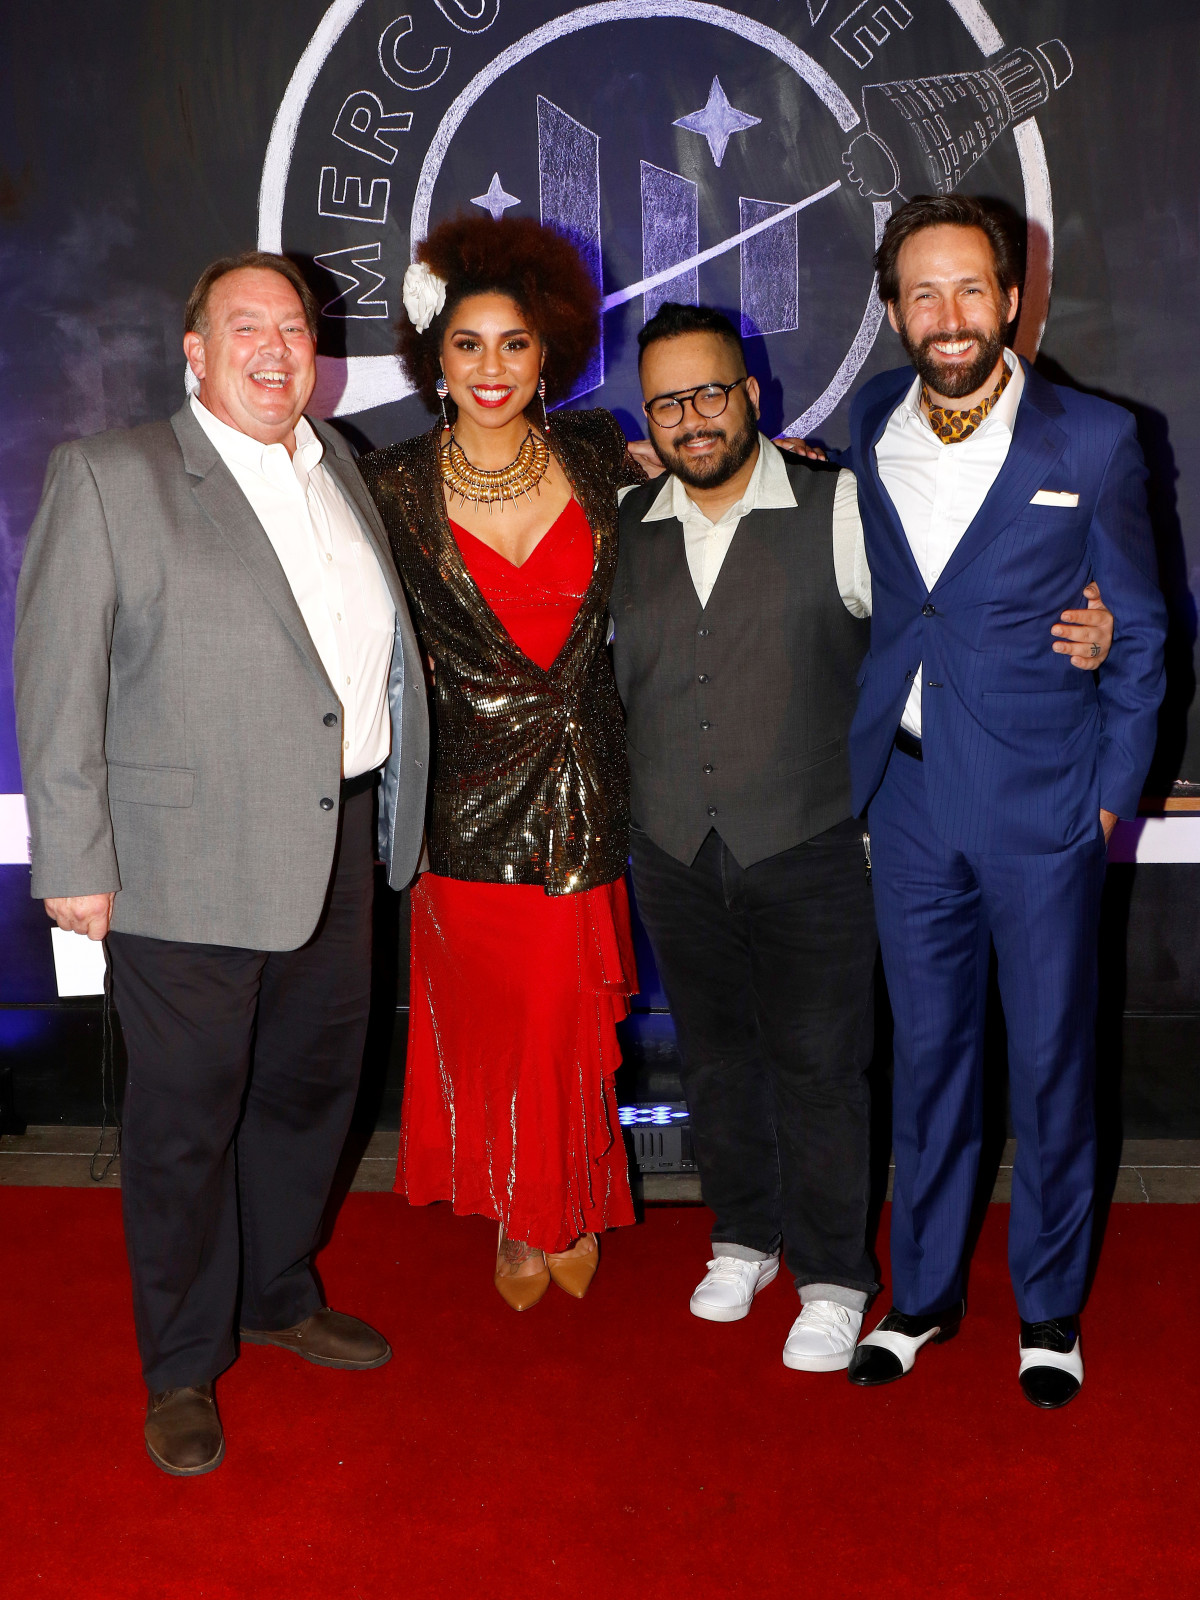 Jeffy Fisher, Joy Villa, Chris Cruz, Andrew Heaten